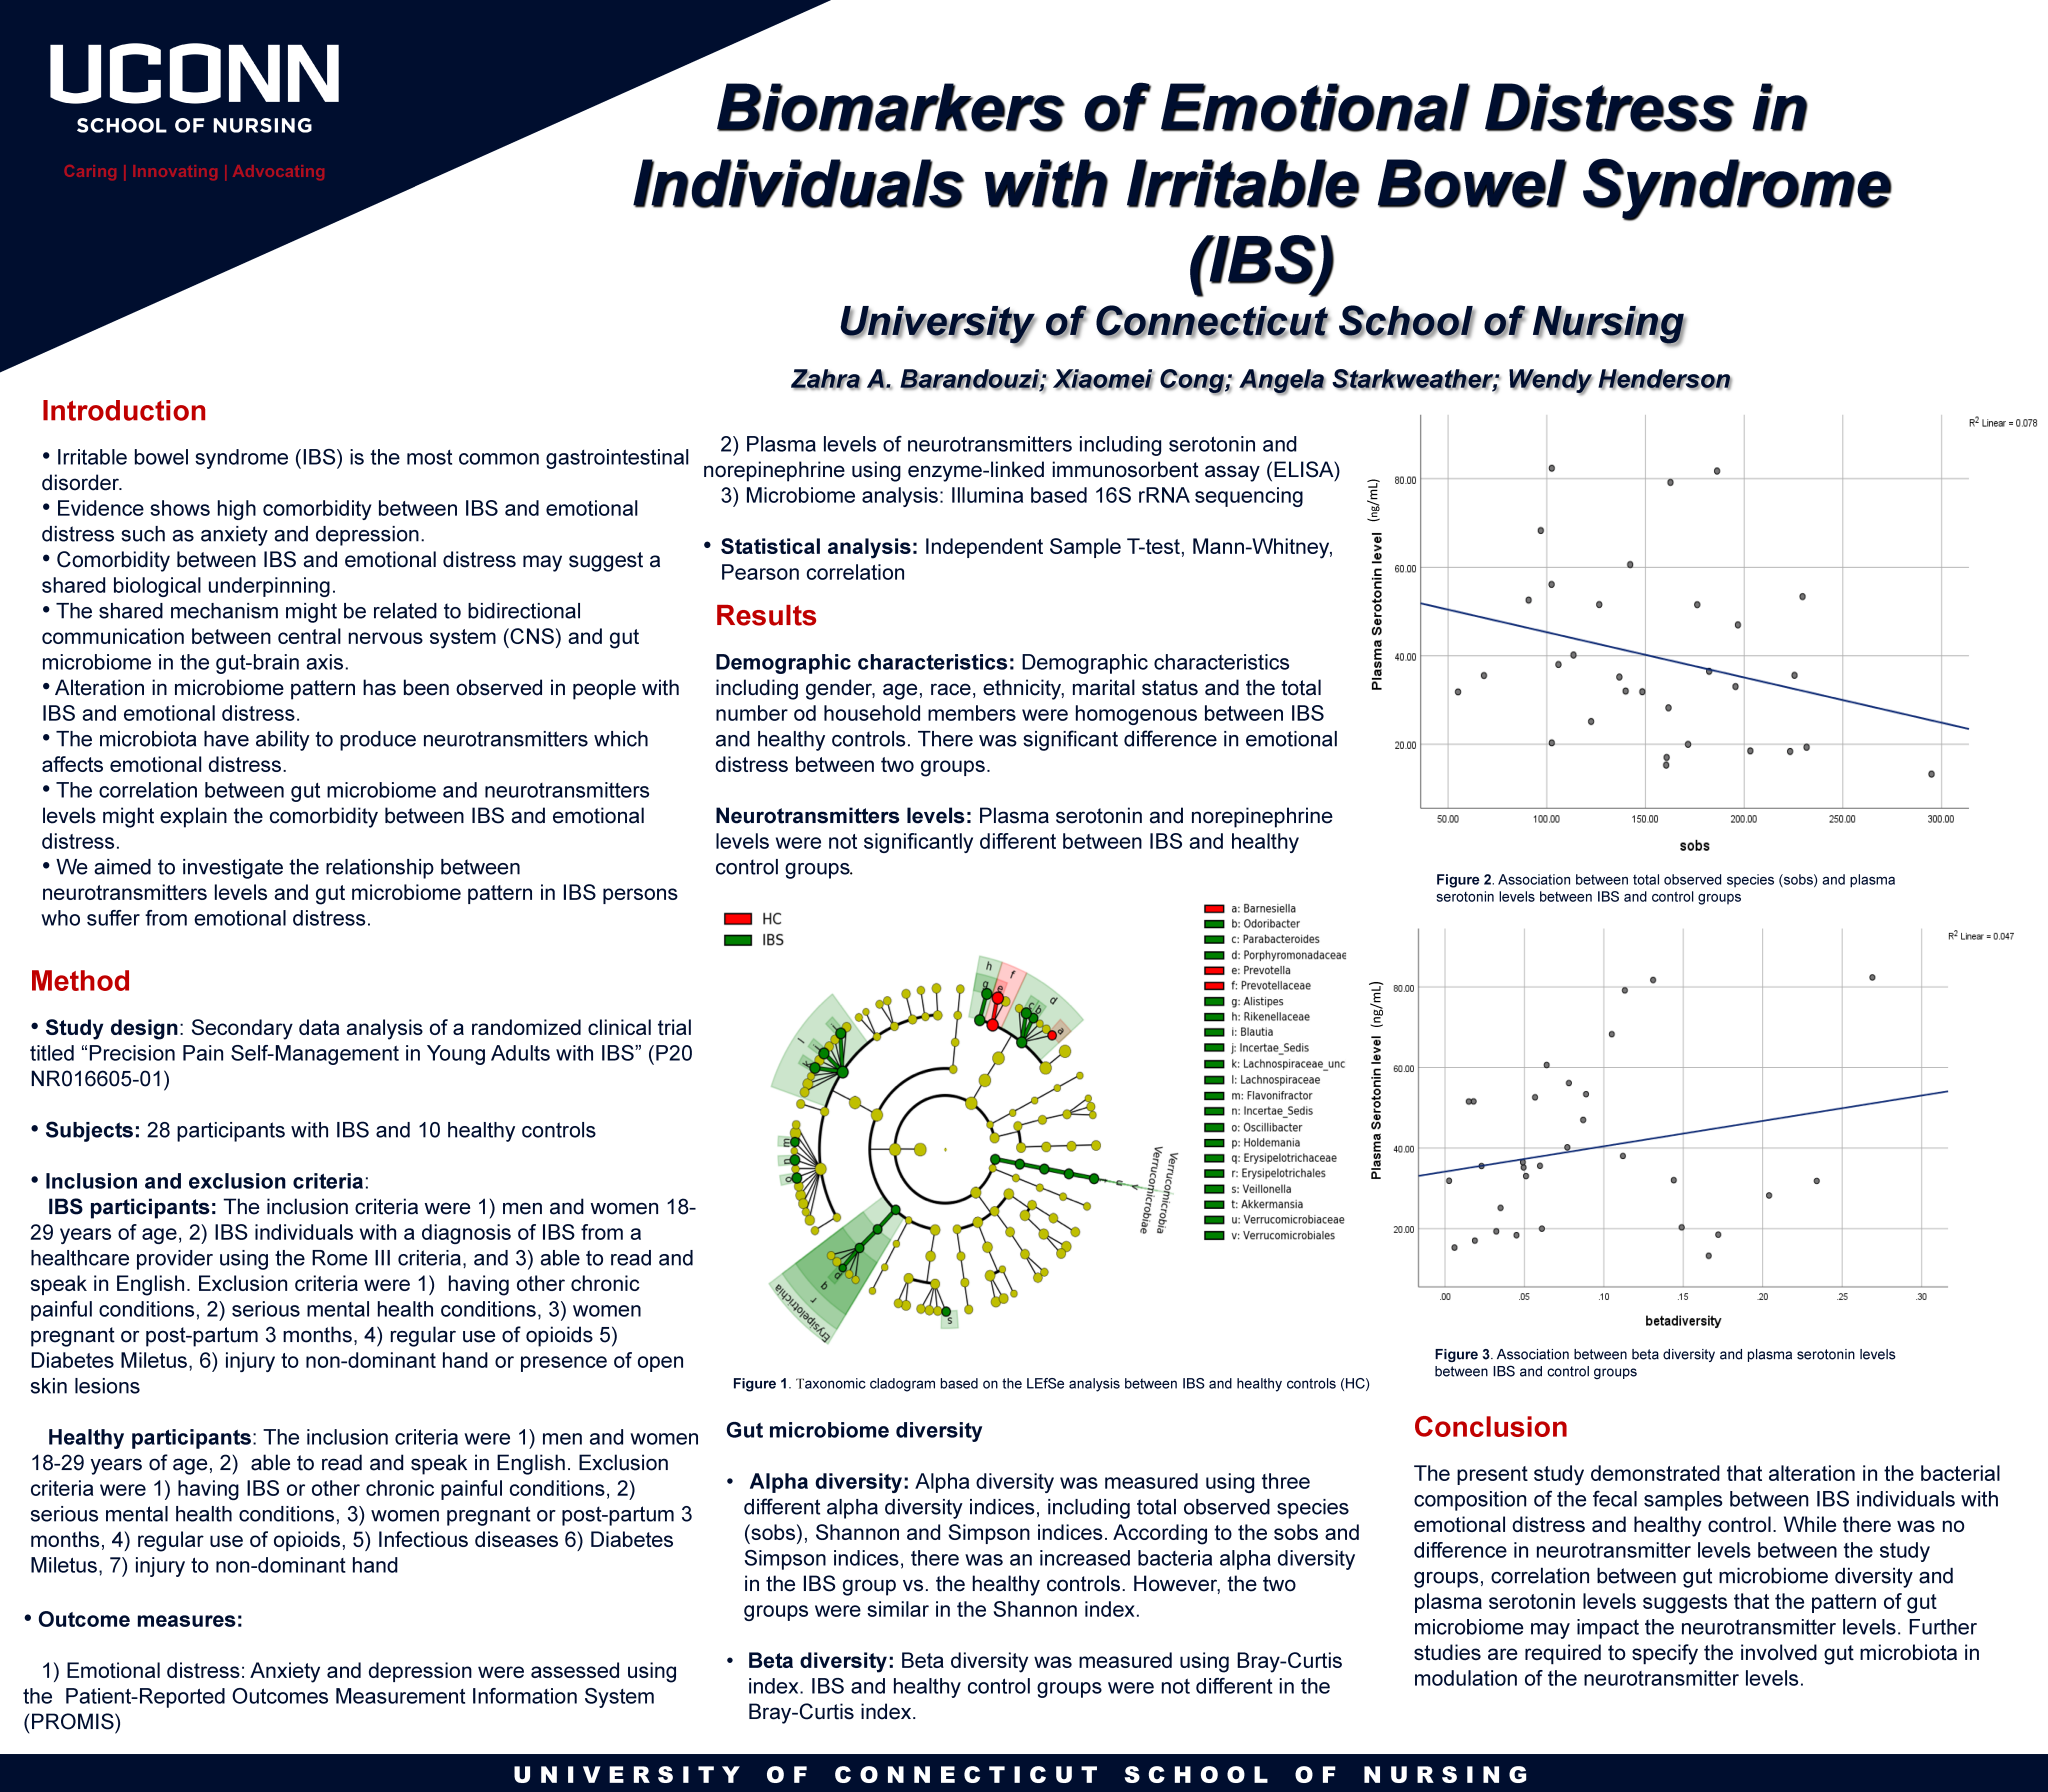 """Zahra Barandouzi Poster Presentation for """"Biomarkers of Emotional Distress in Individuals with Irritable Bowel Syndrome (IBS)"""""""